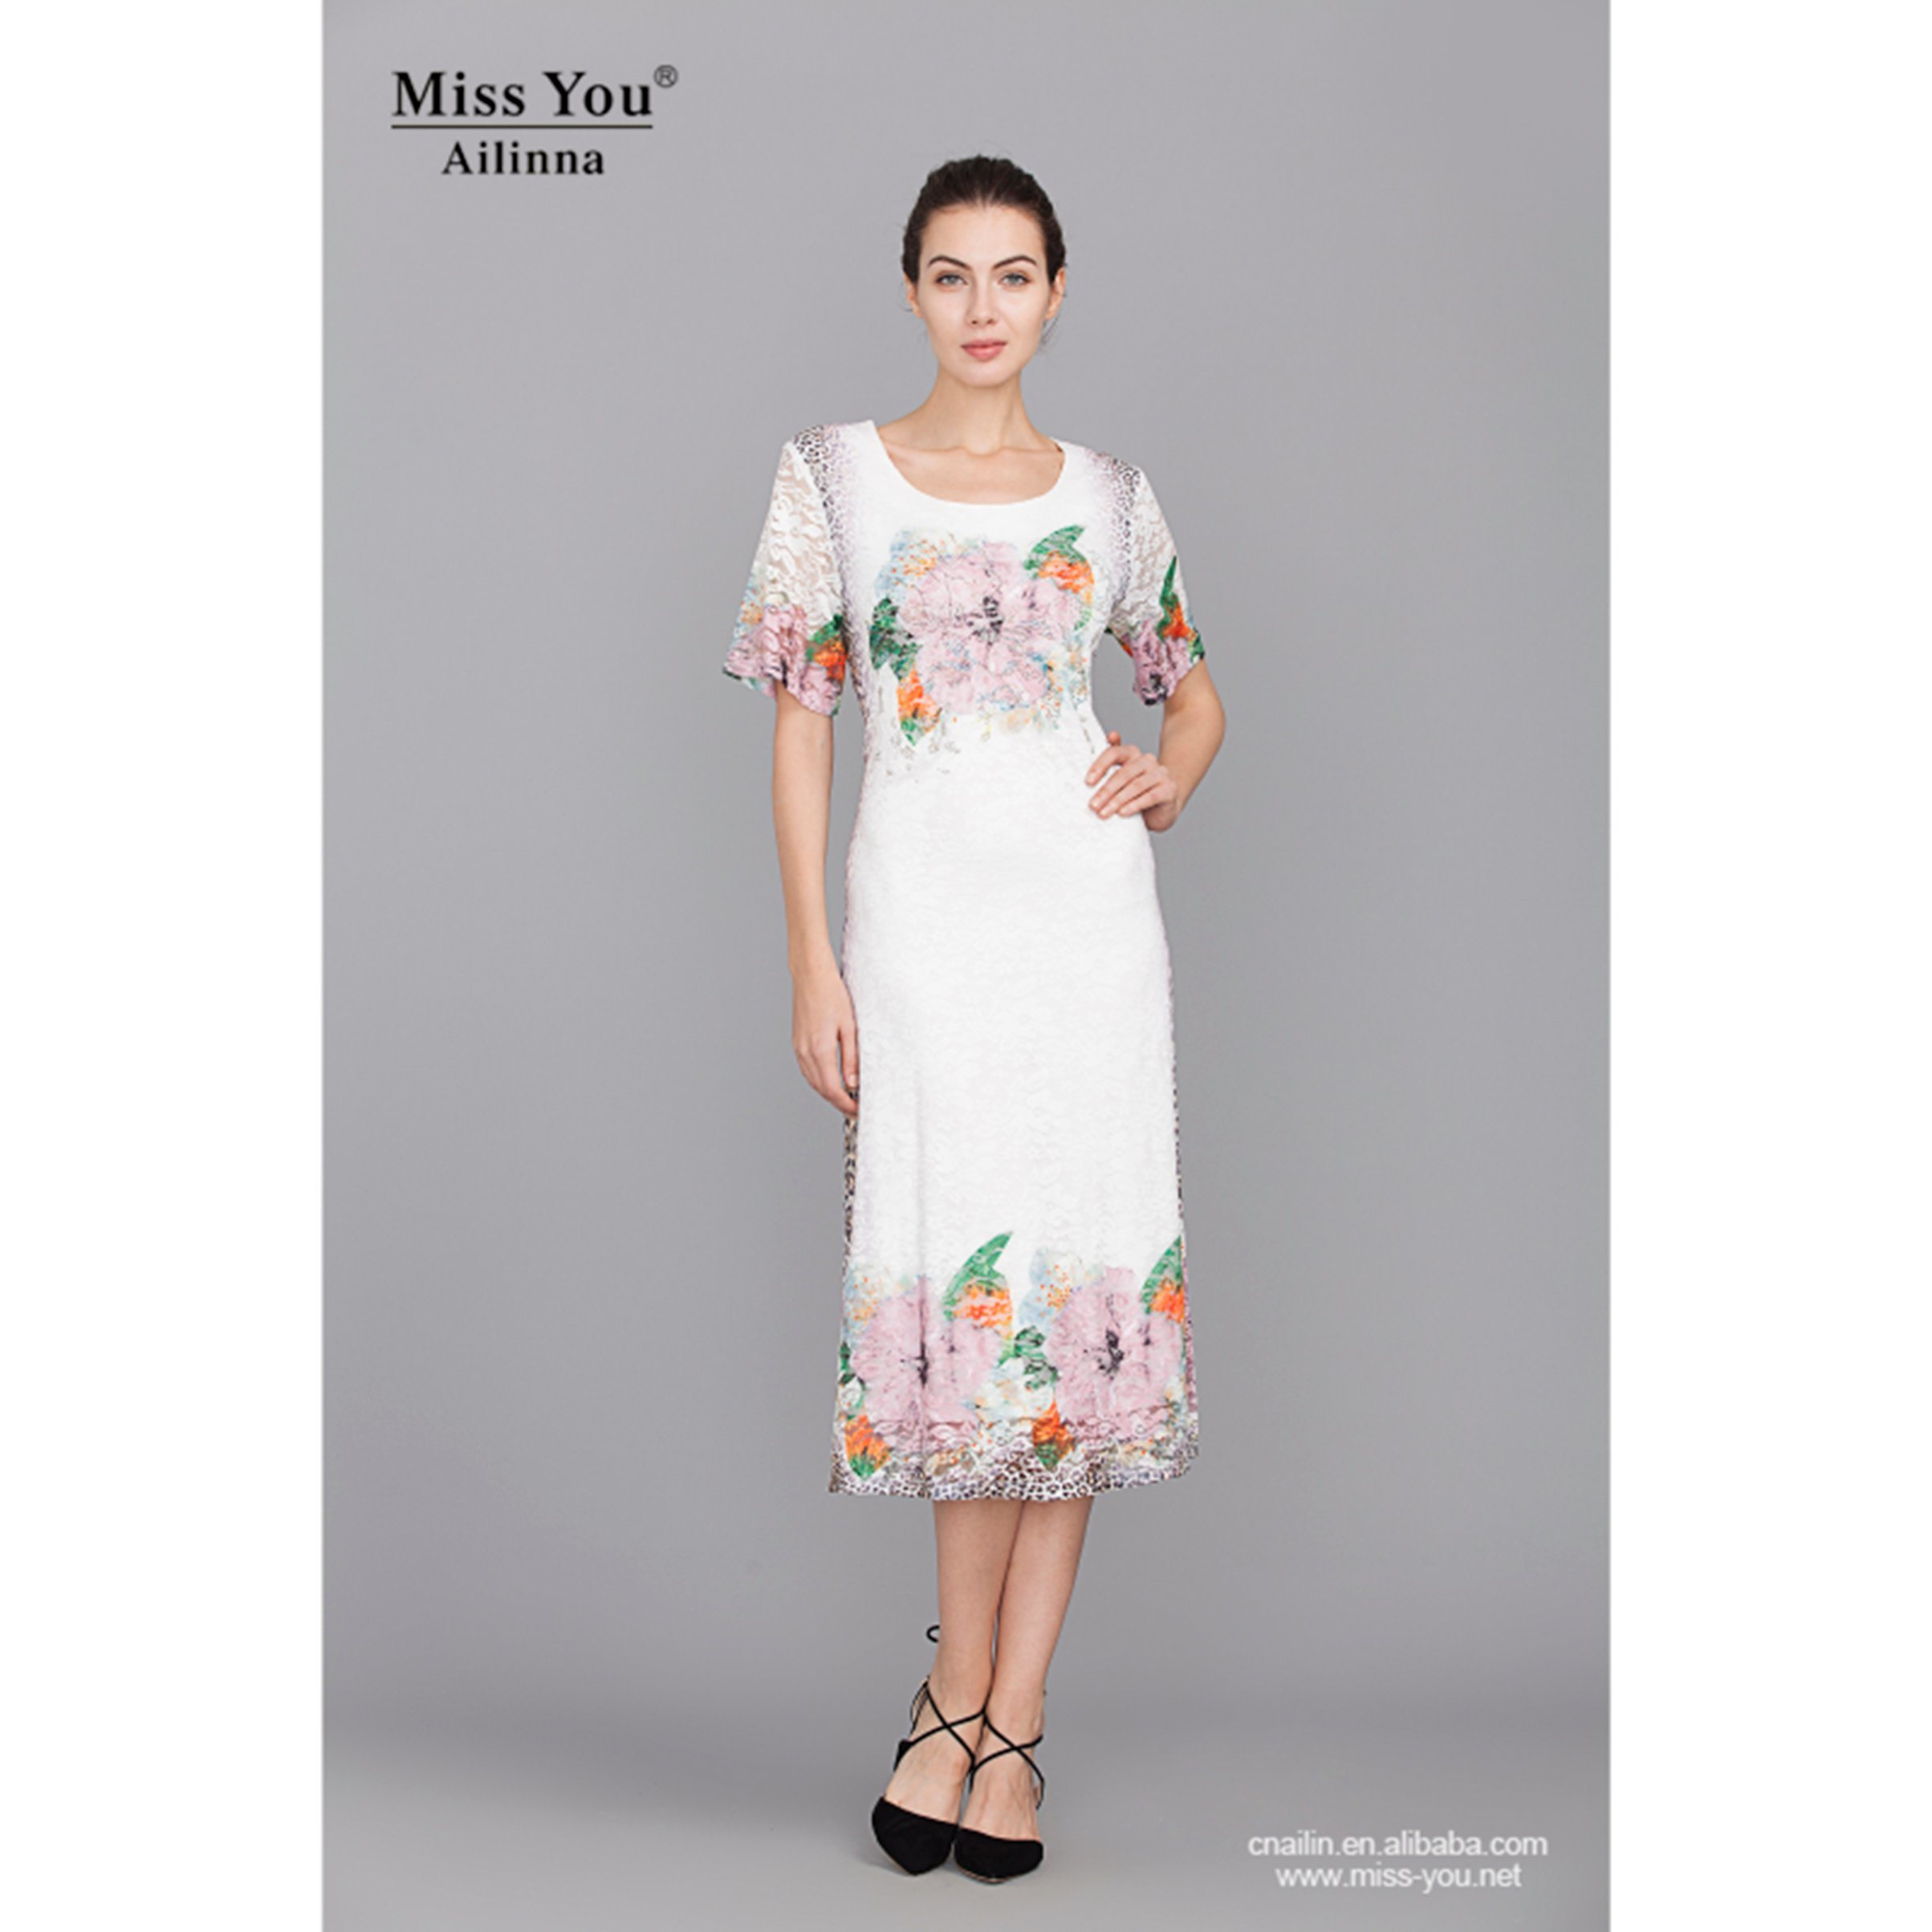 Miss You Ailinna 801856 Women Elegant White Lace Print Dress